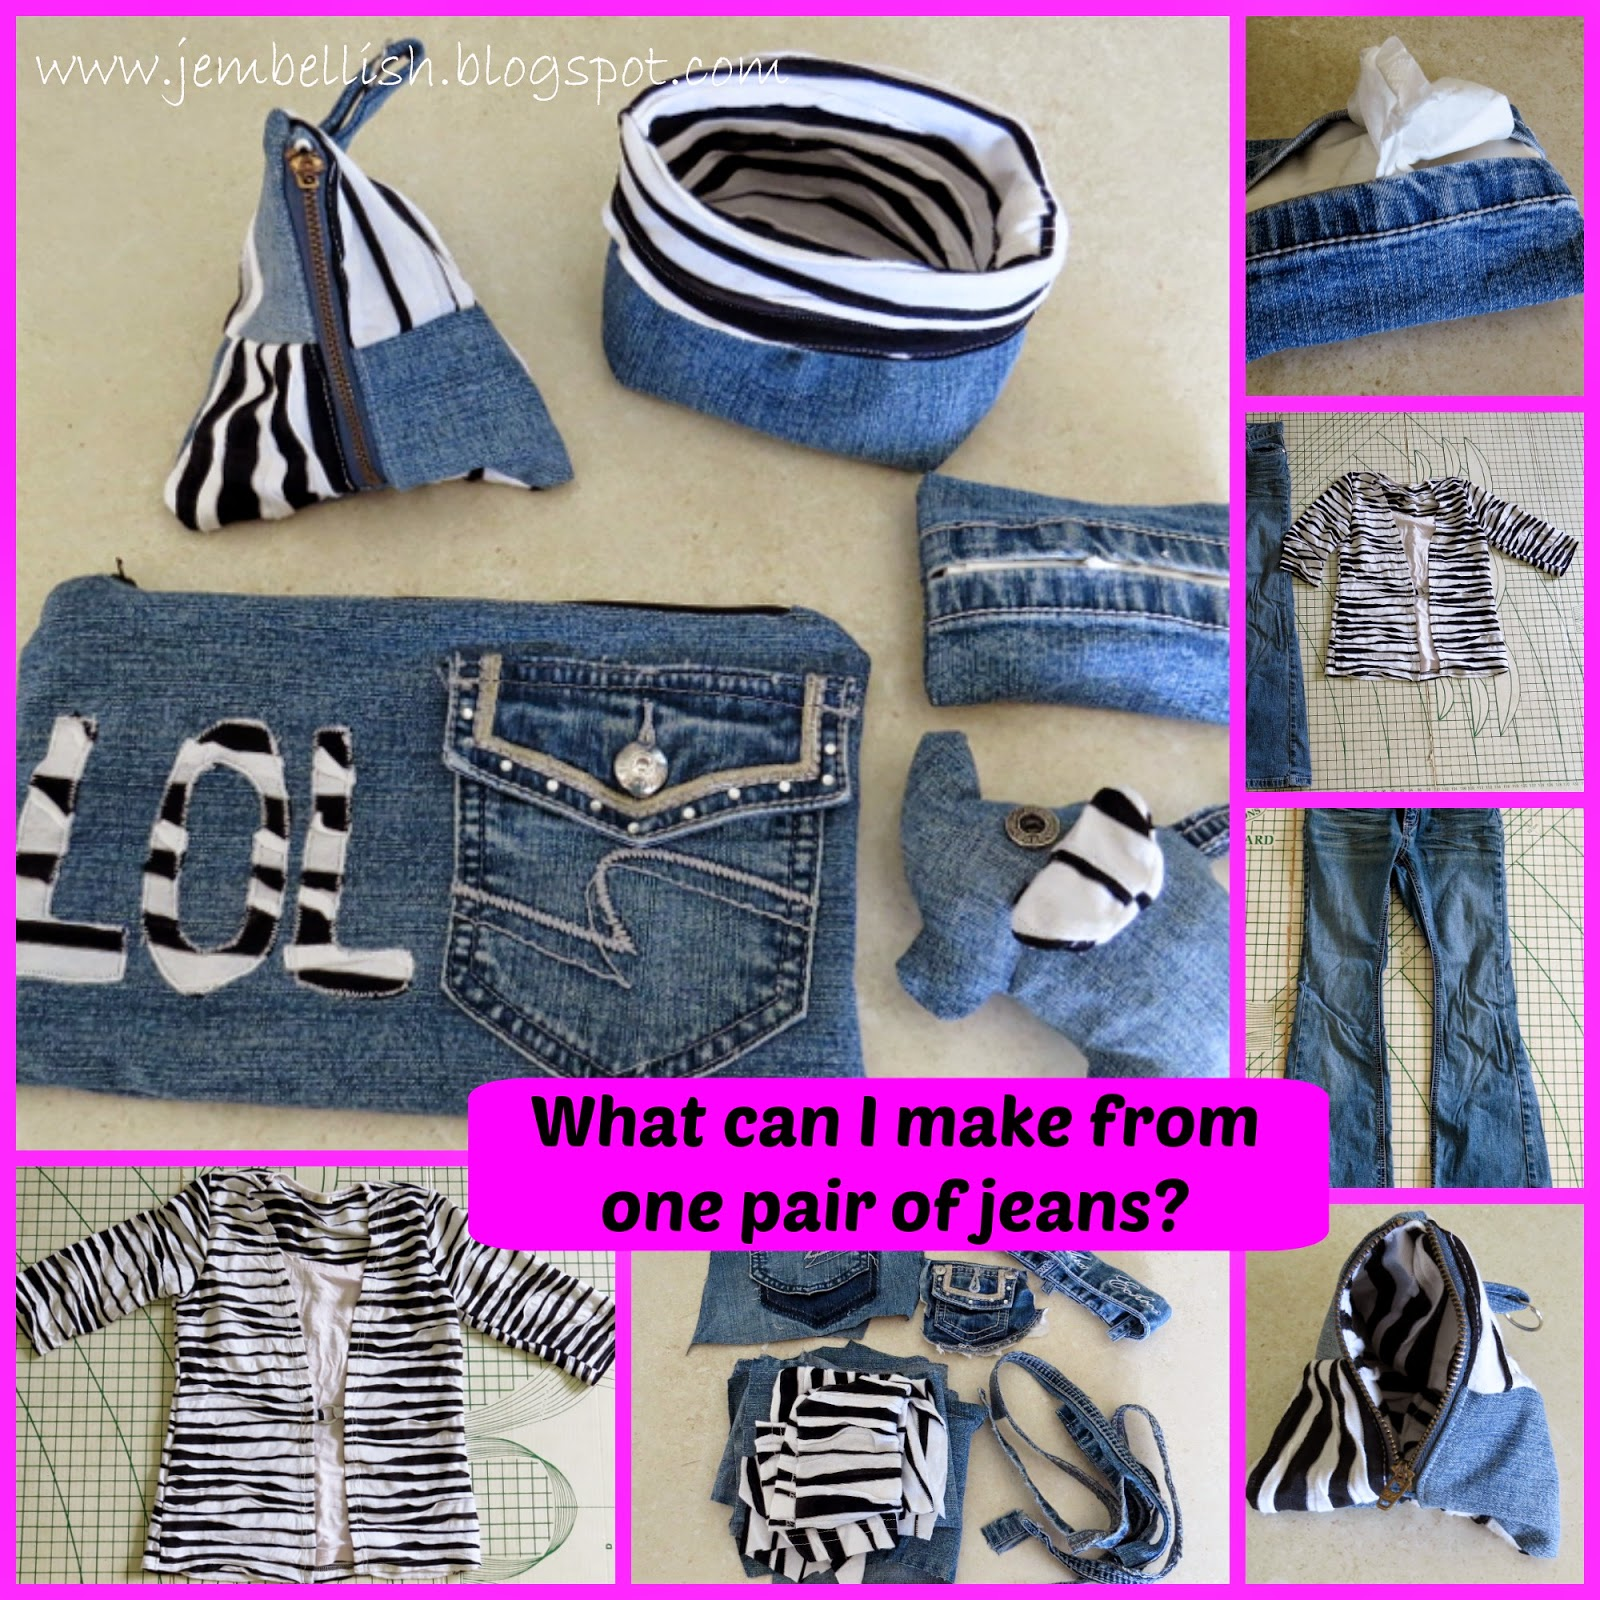 What can I make from one pair of jeans?